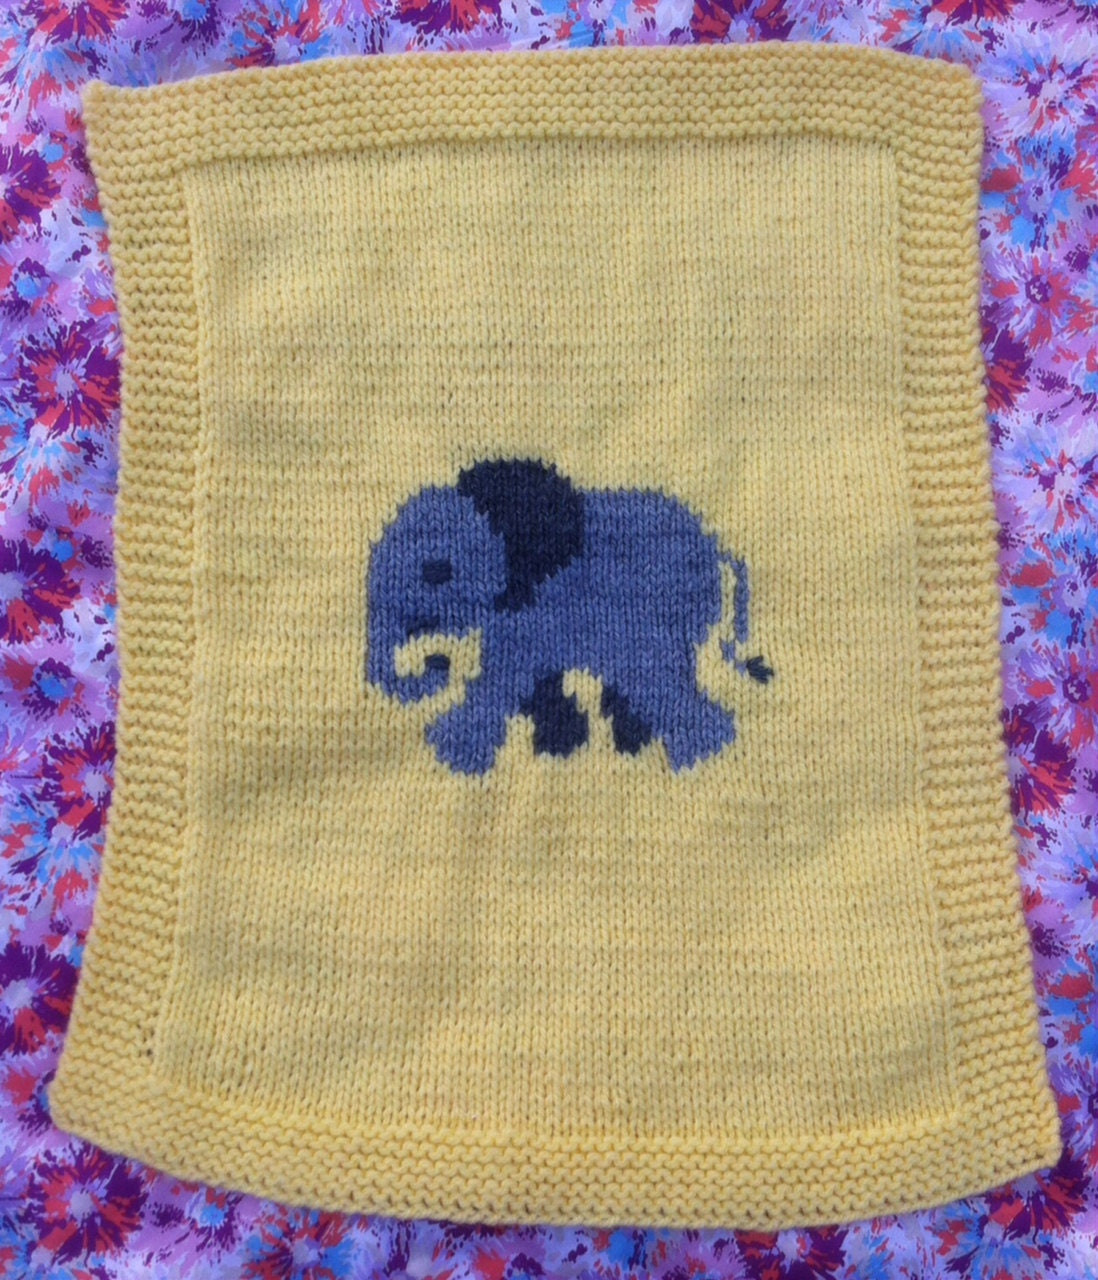 Knitting Pattern For Baby Elephant : Elephant baby blanket/pram cover knitting pattern yellow and